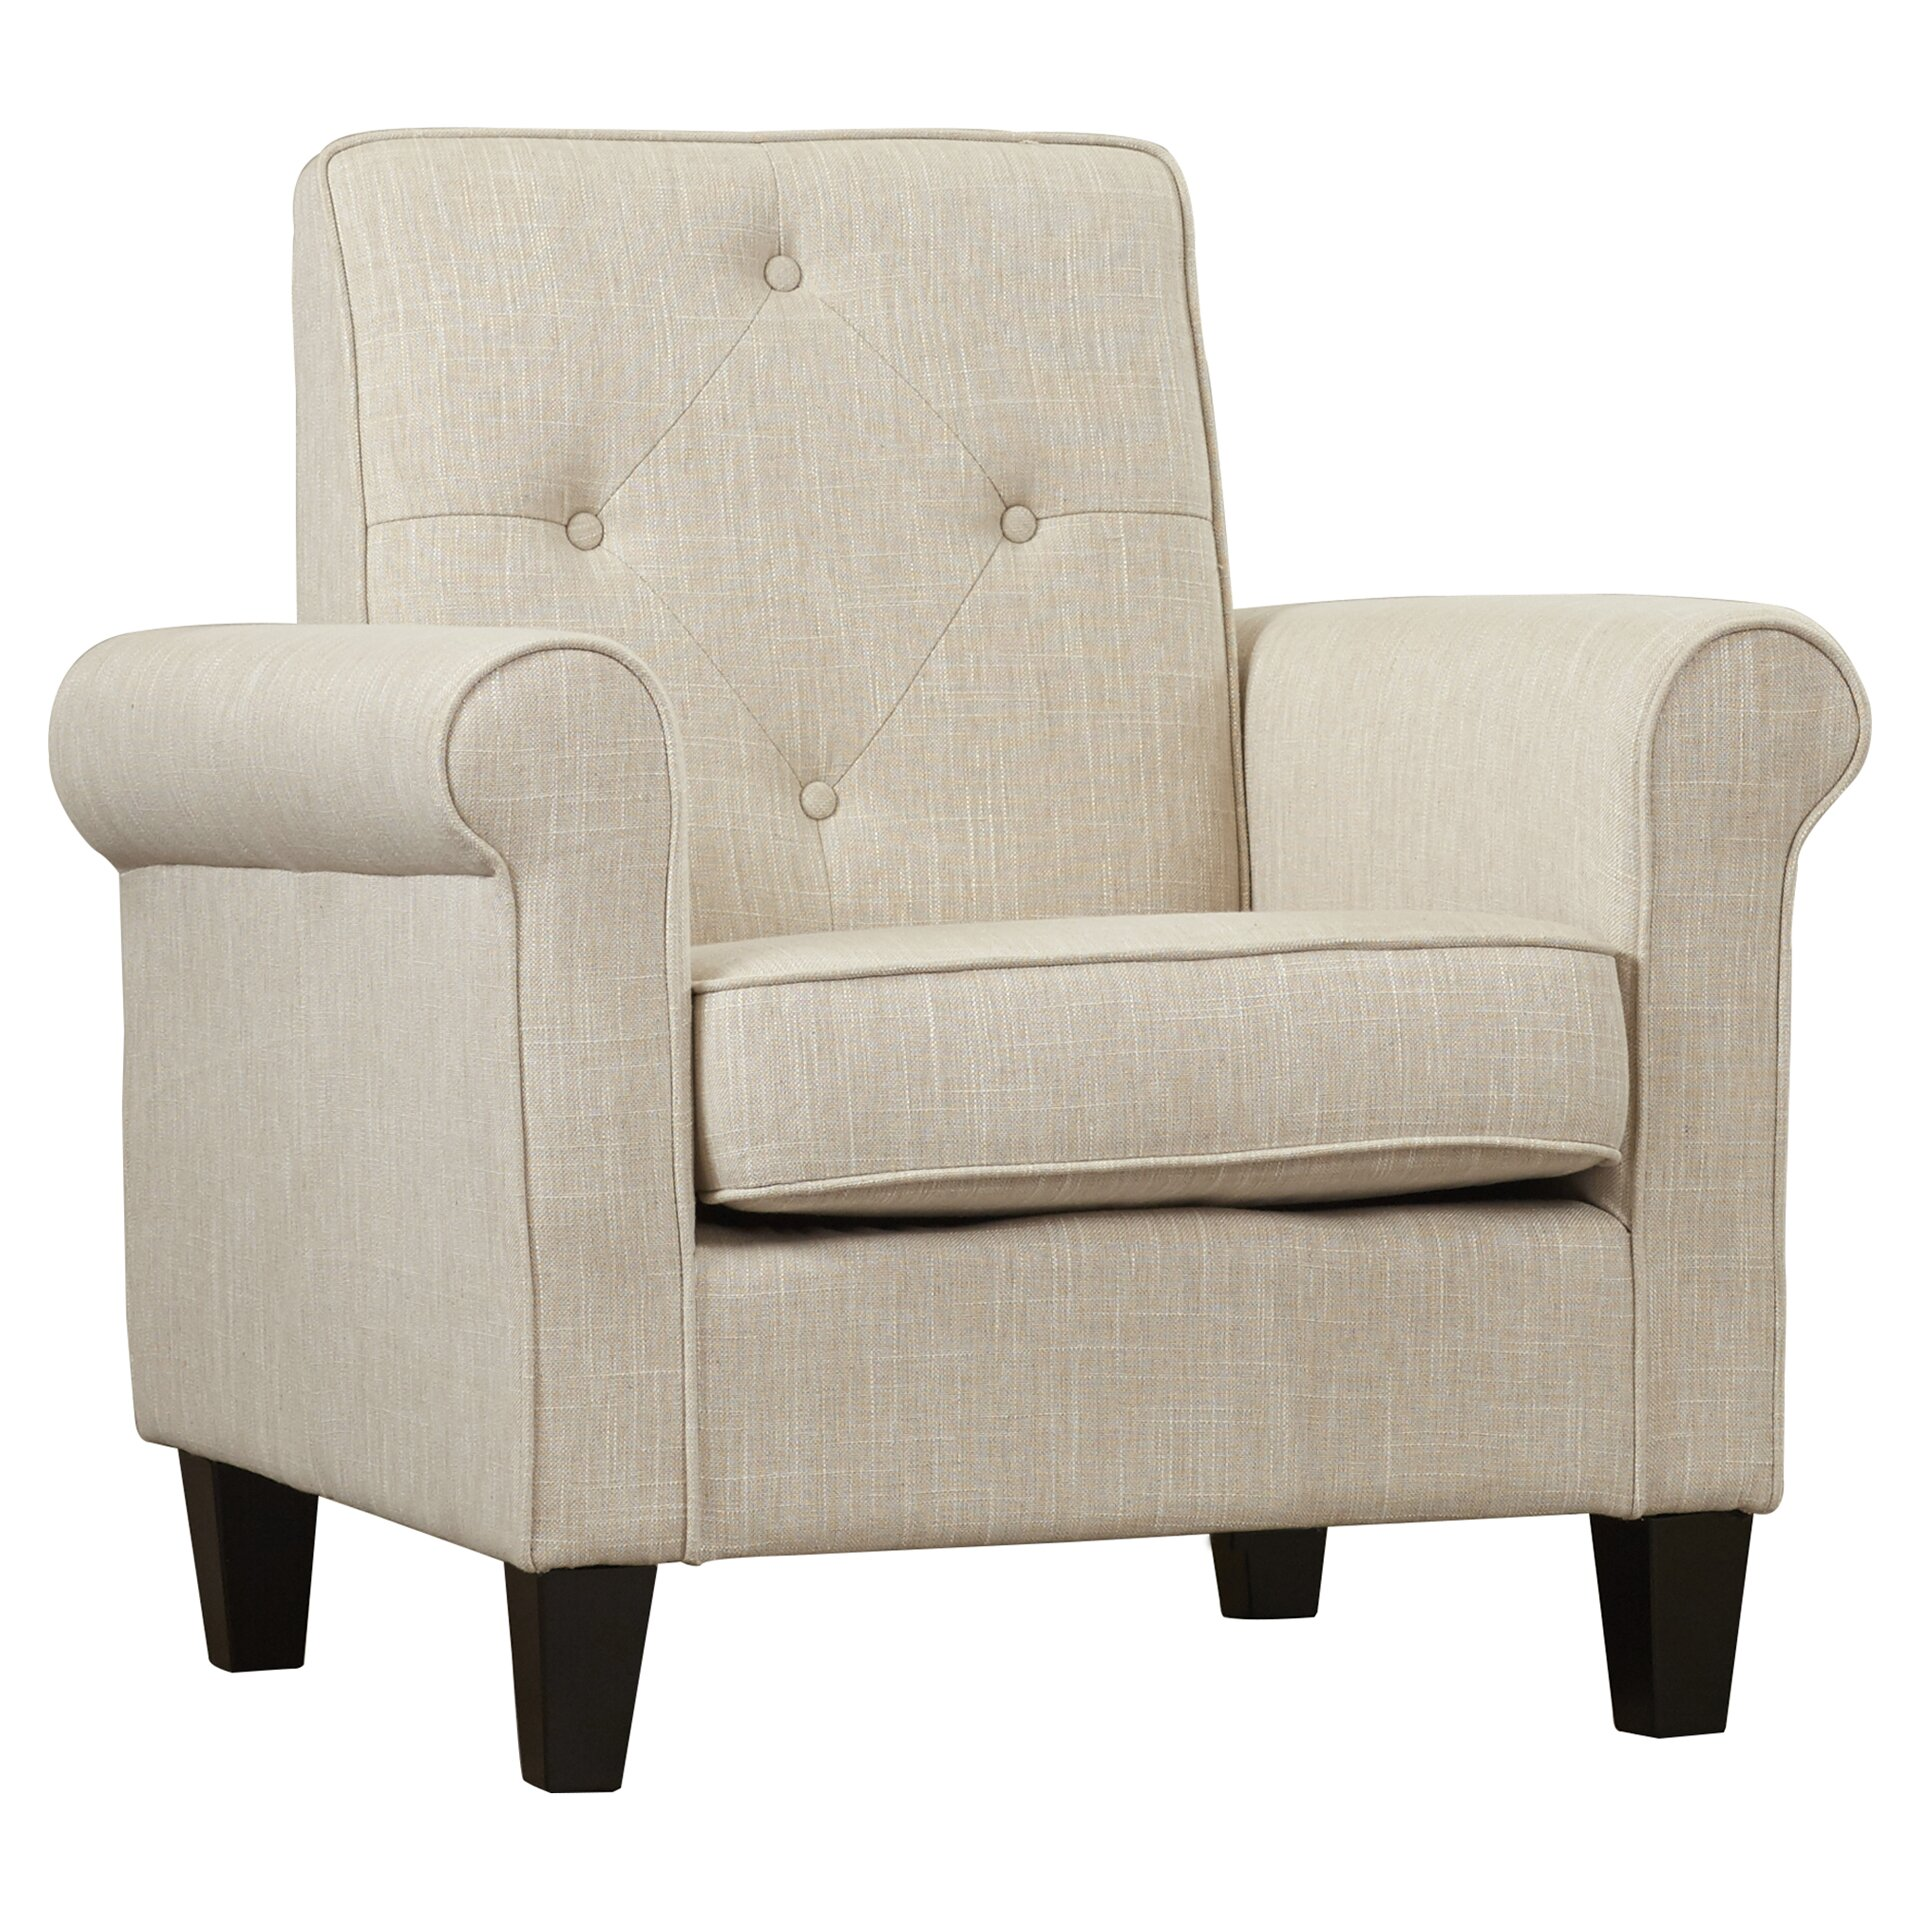 Charlton Home Coll Tufted Upholstered Lounge Chair & Reviews